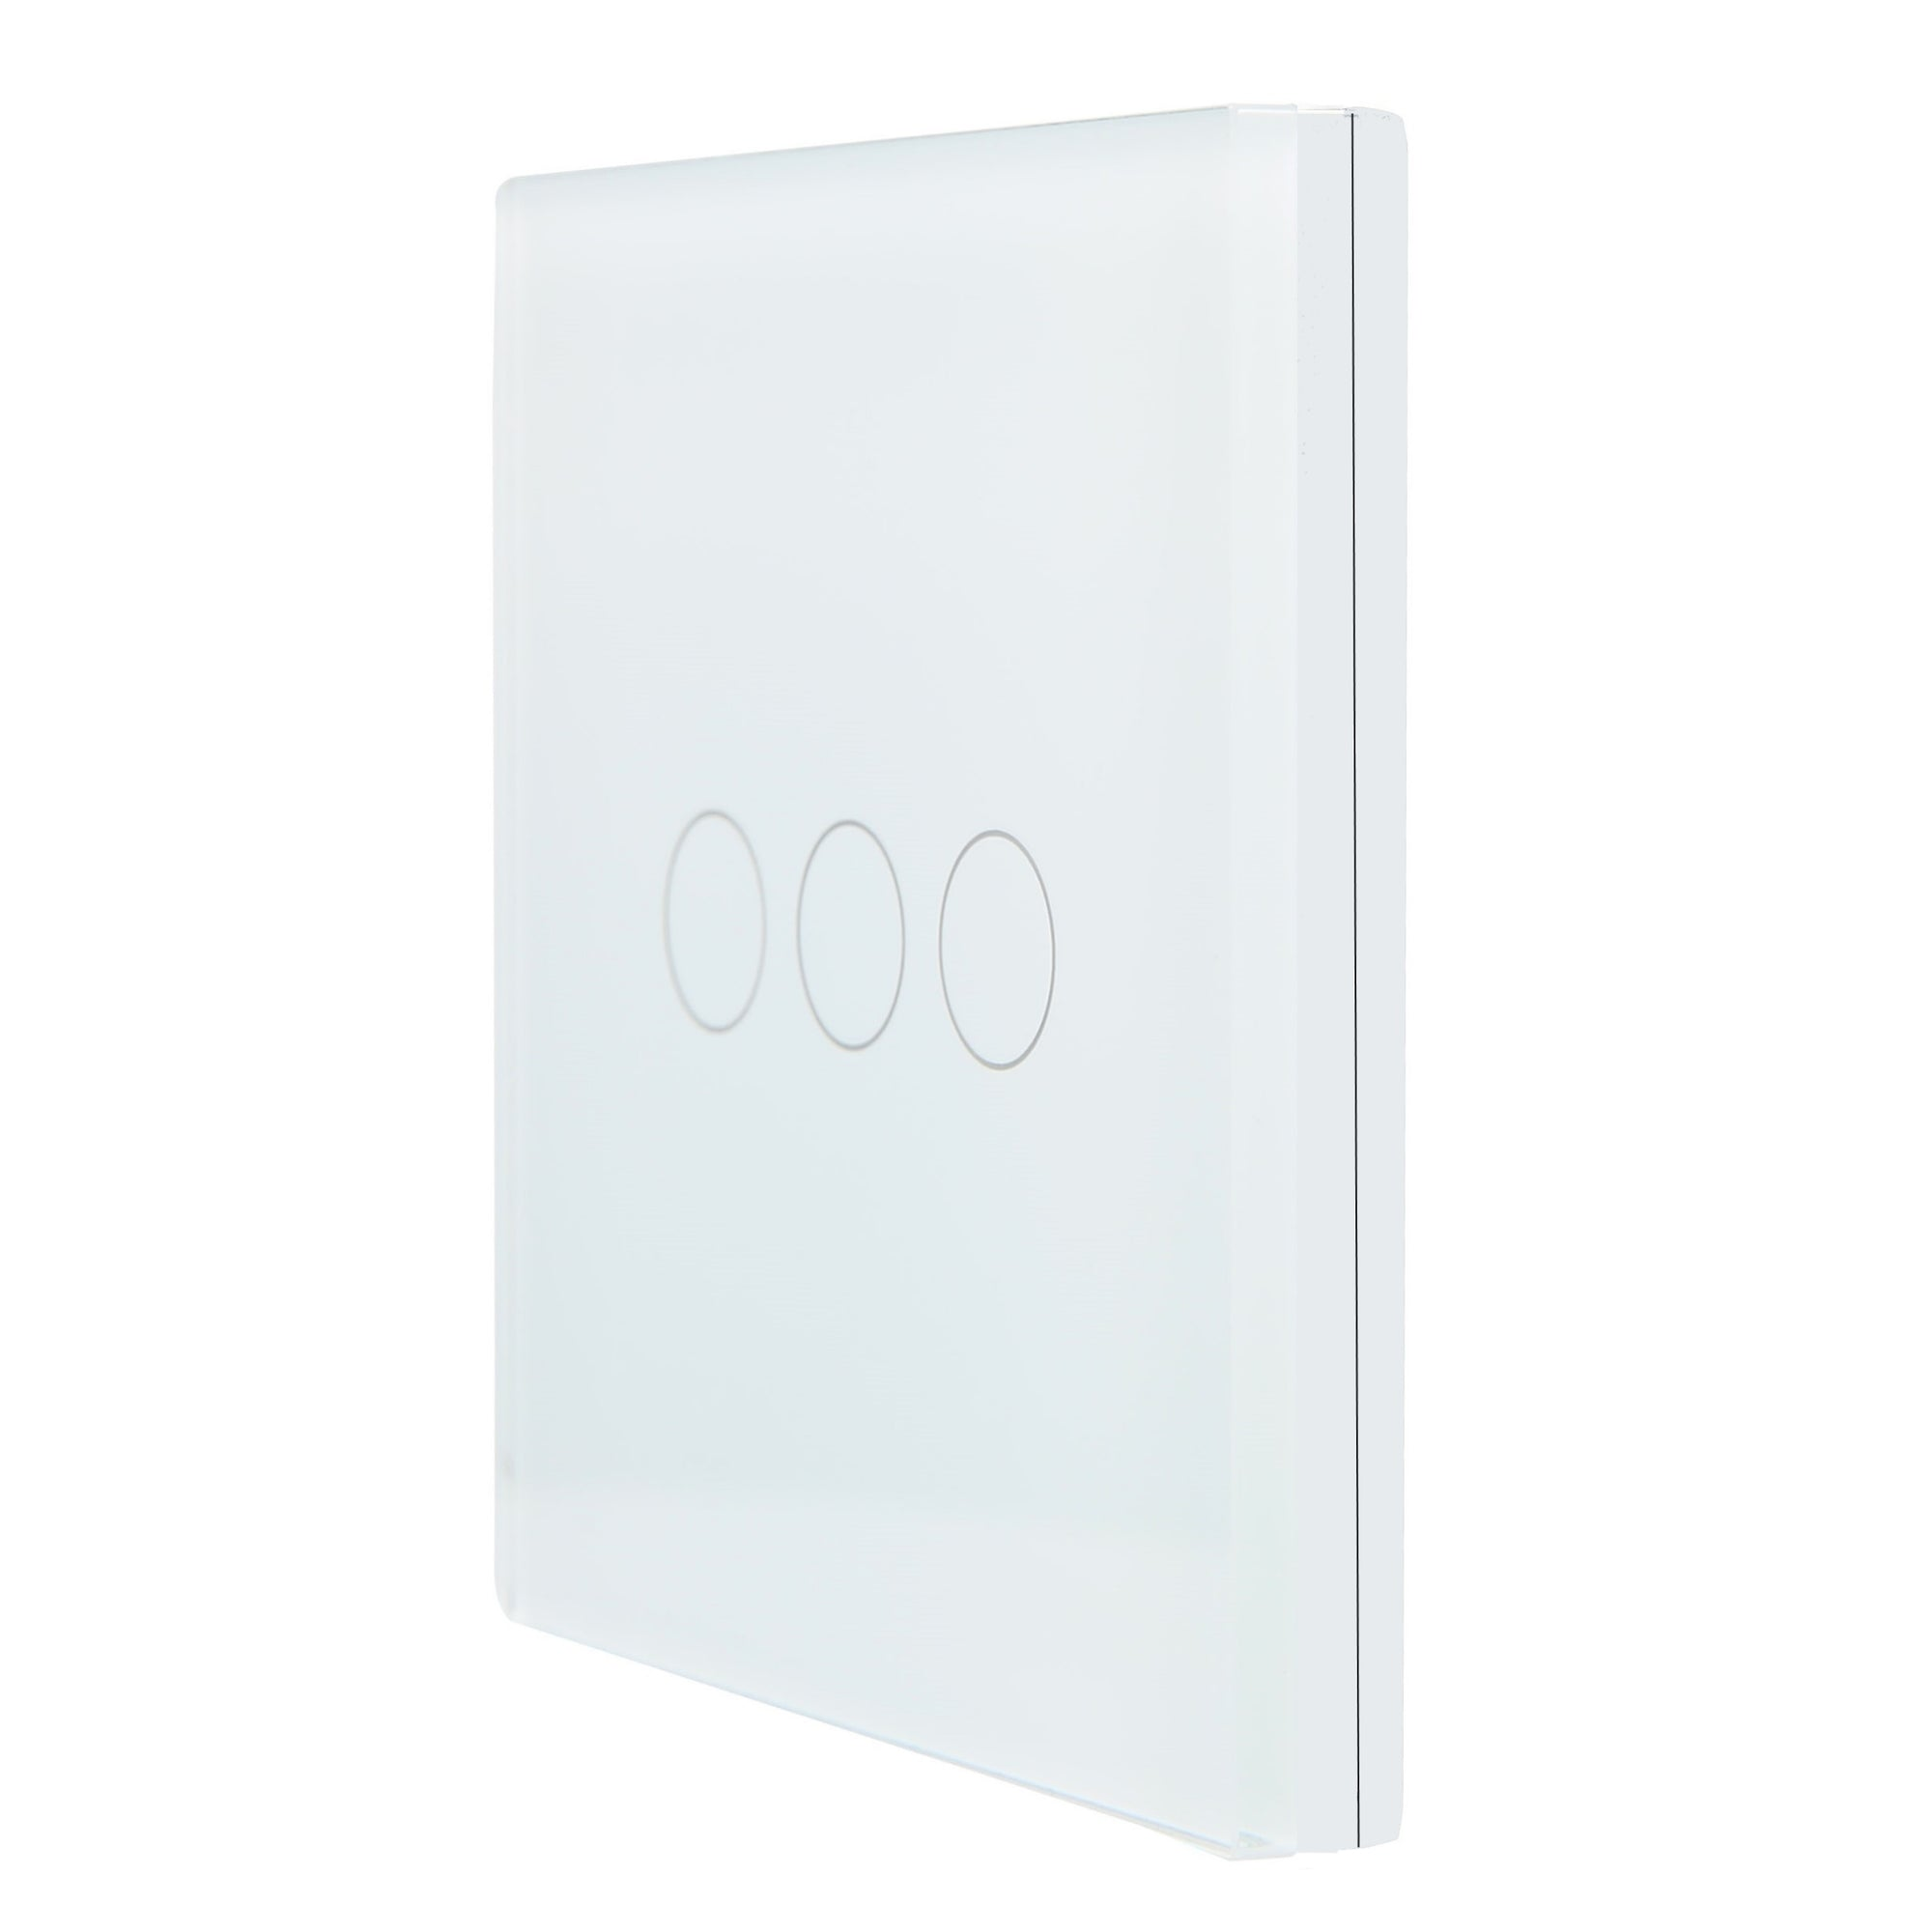 White Glass Wall Remote Control Panel 3 Gang for RF-2Way (DC)